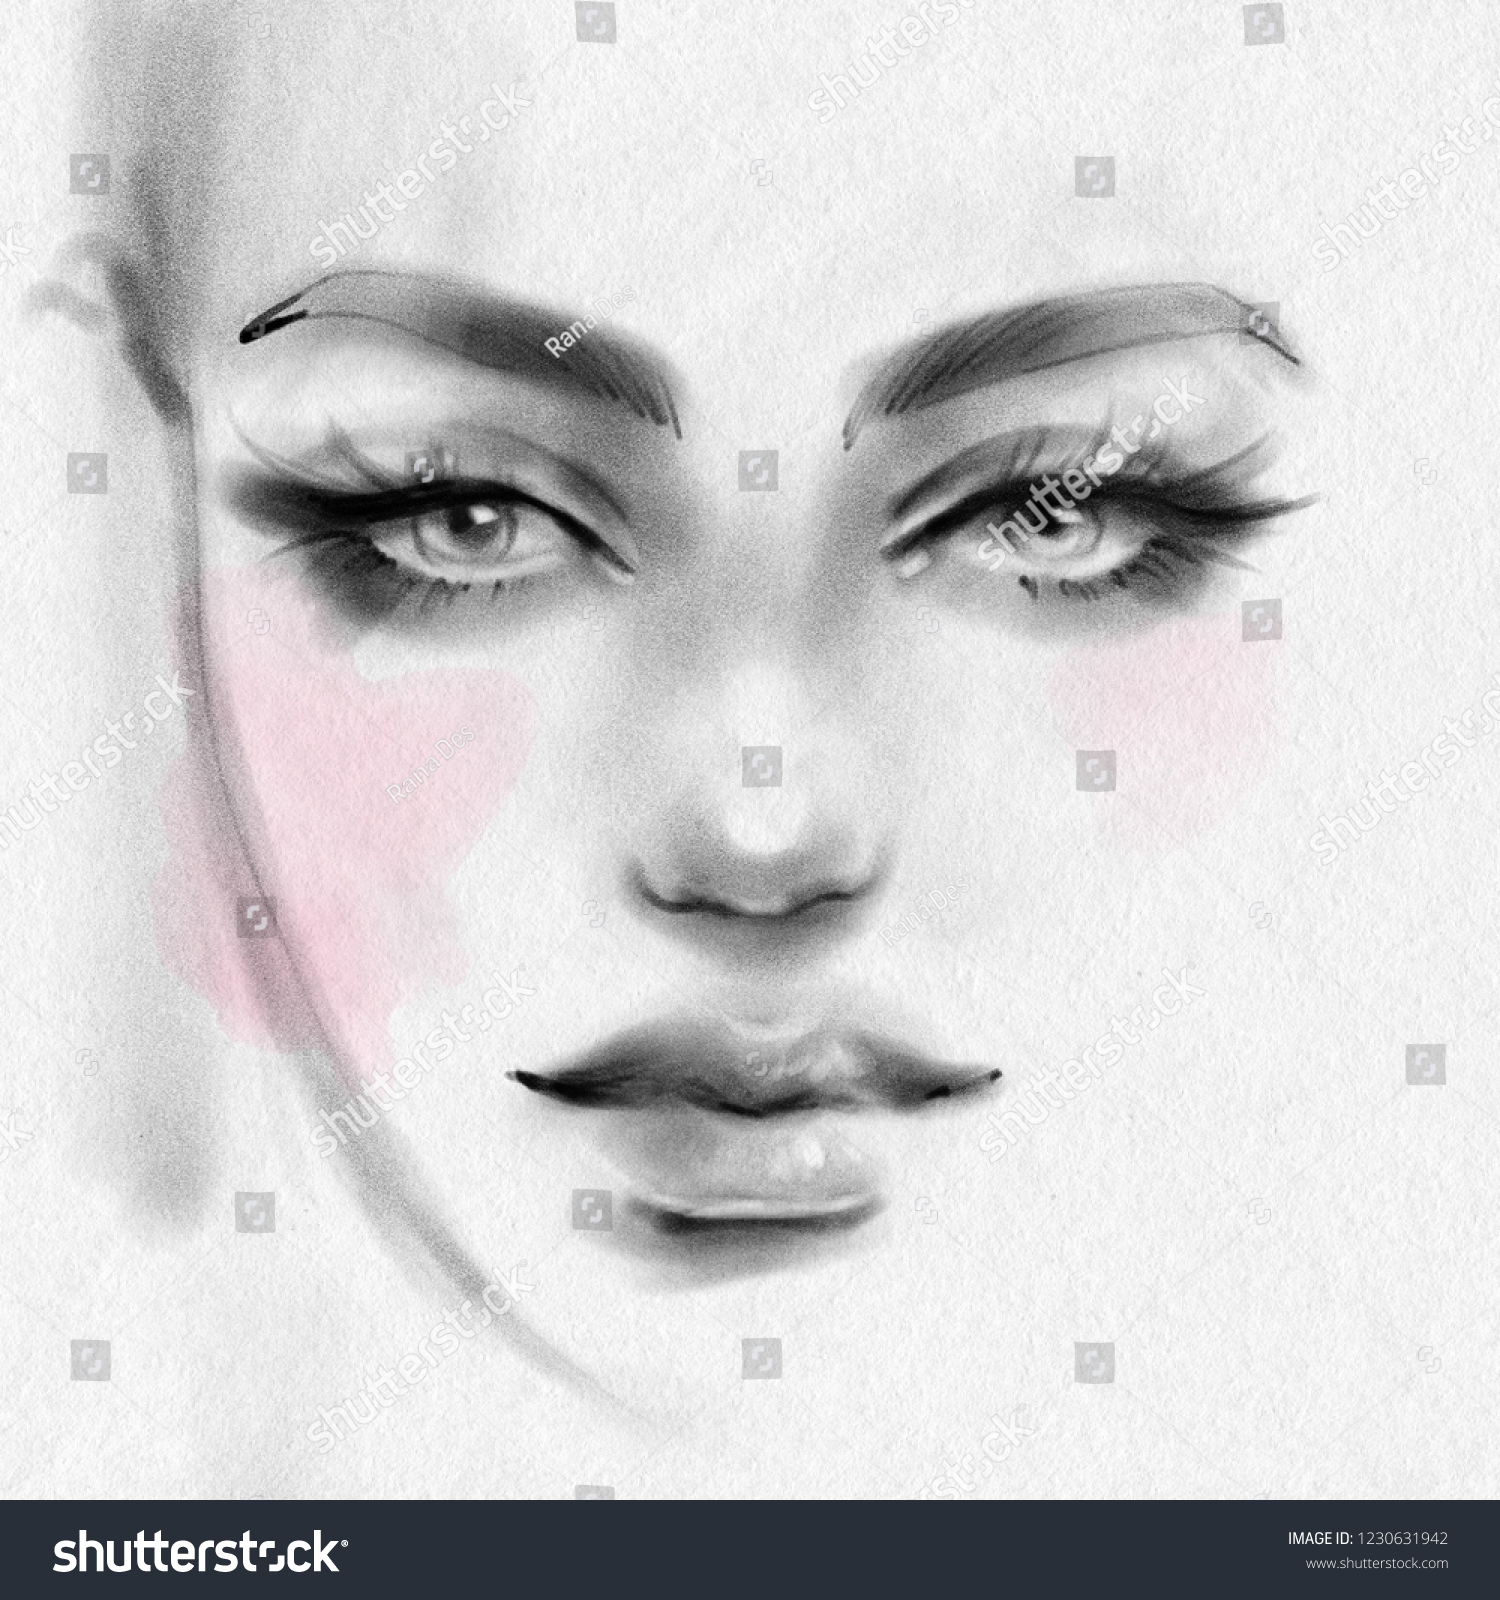 Beautiful girl face with makeup black and white fashion illustration hand drawn pencil sketch on